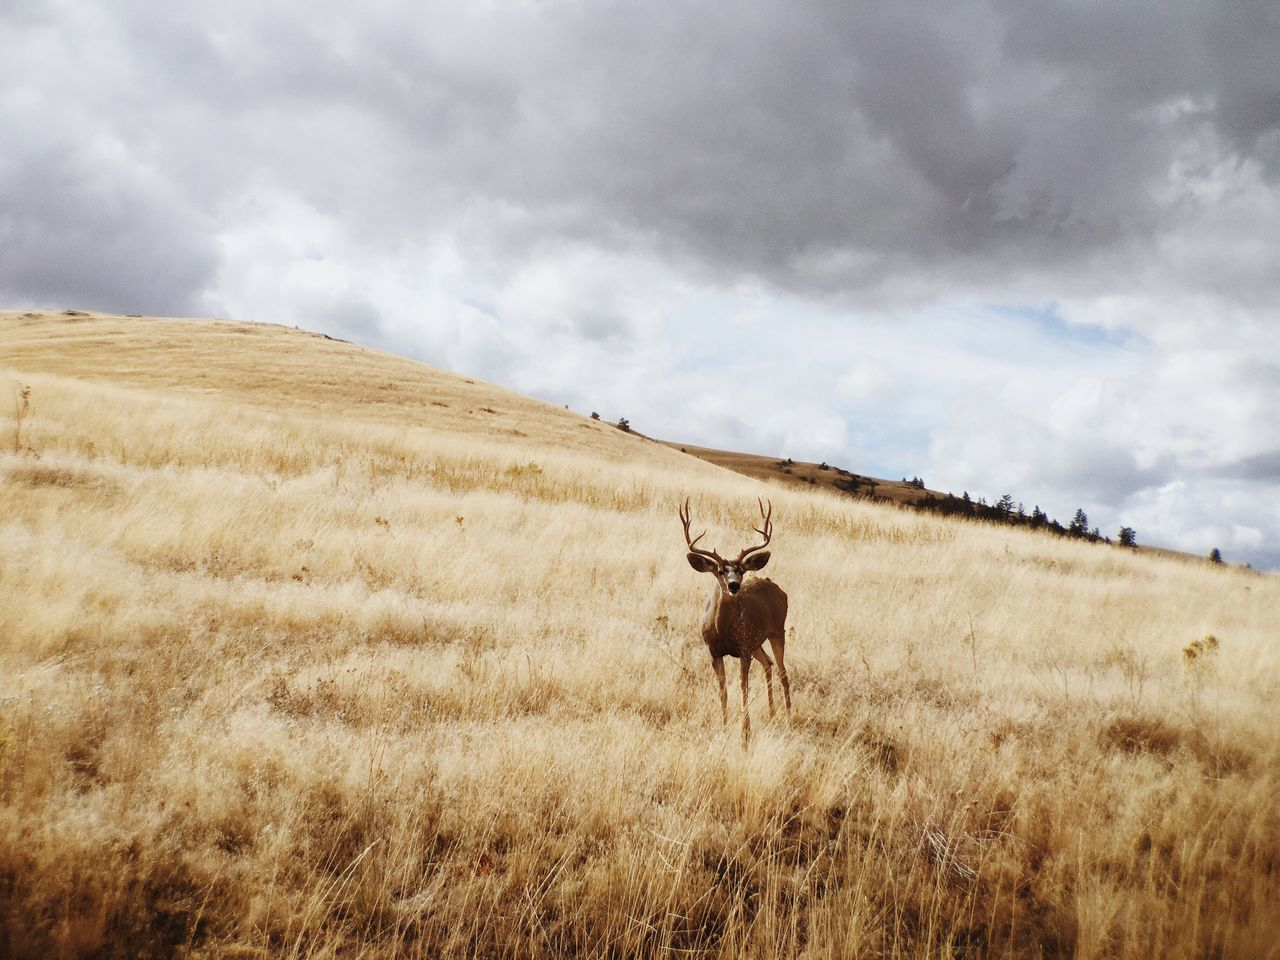 Deer on grassy field against cloudy sky